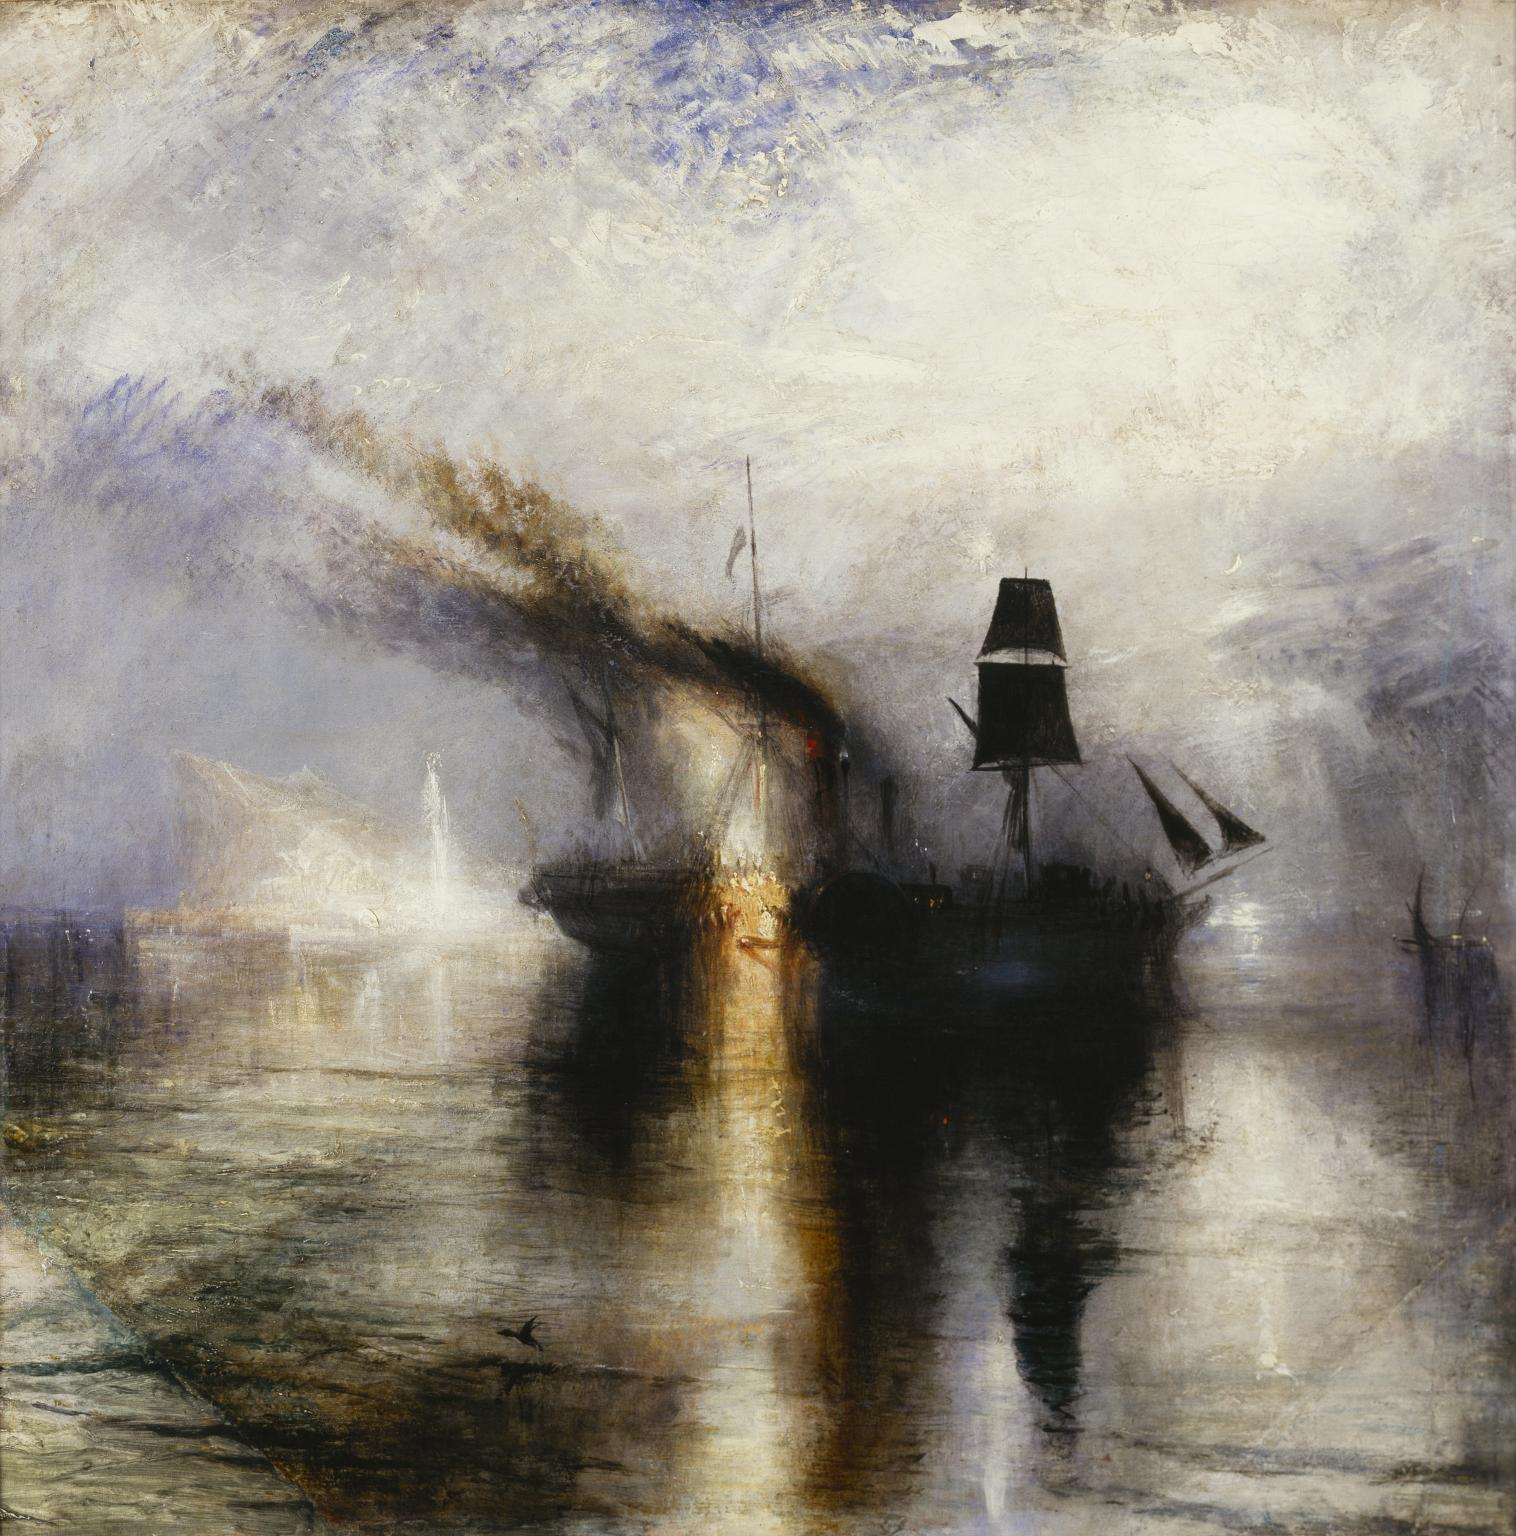 Figure 2. Joseph Mallord William Turner, Peace—Burial at Sea, 1842, oil on canvas, 87 x 87 cm, Tate Britain, London.